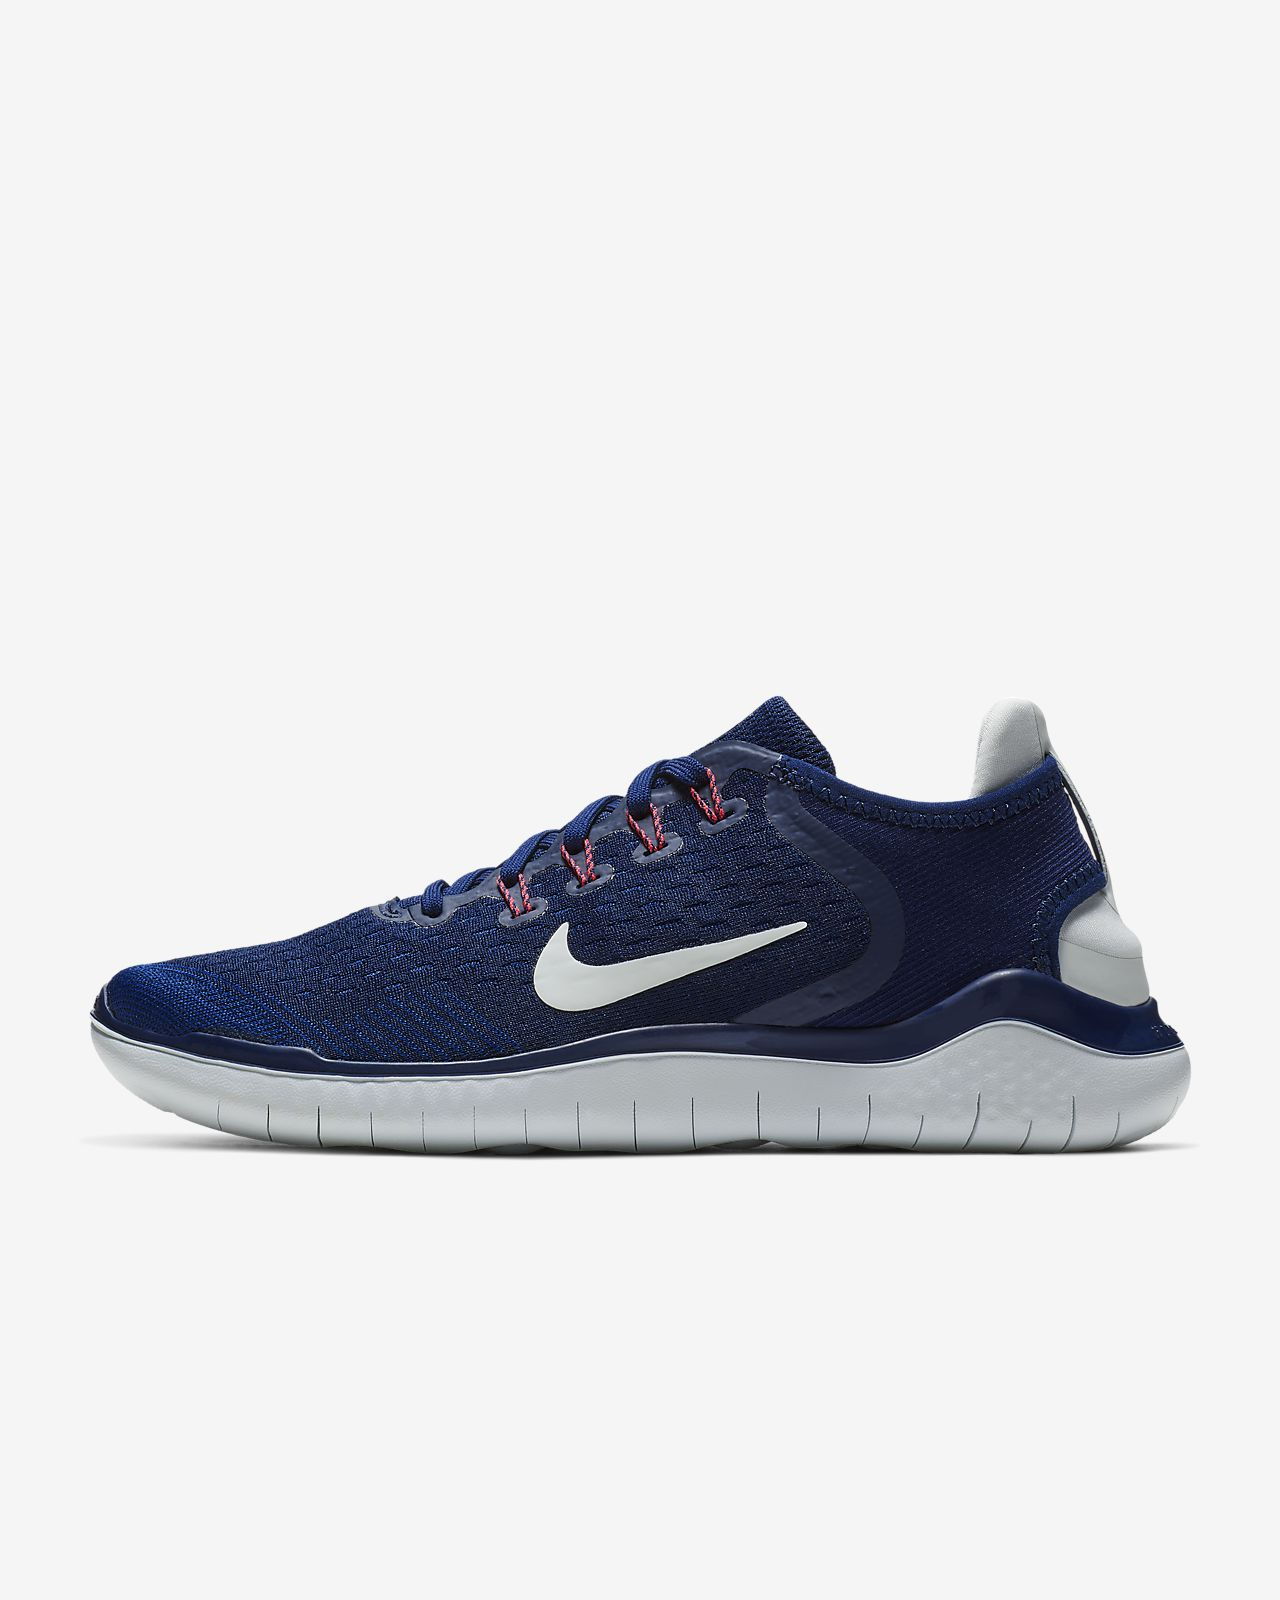 d87bb085a32 Low Resolution Nike Free RN 2018 Women s Running Shoe Nike Free RN 2018 Women s  Running Shoe